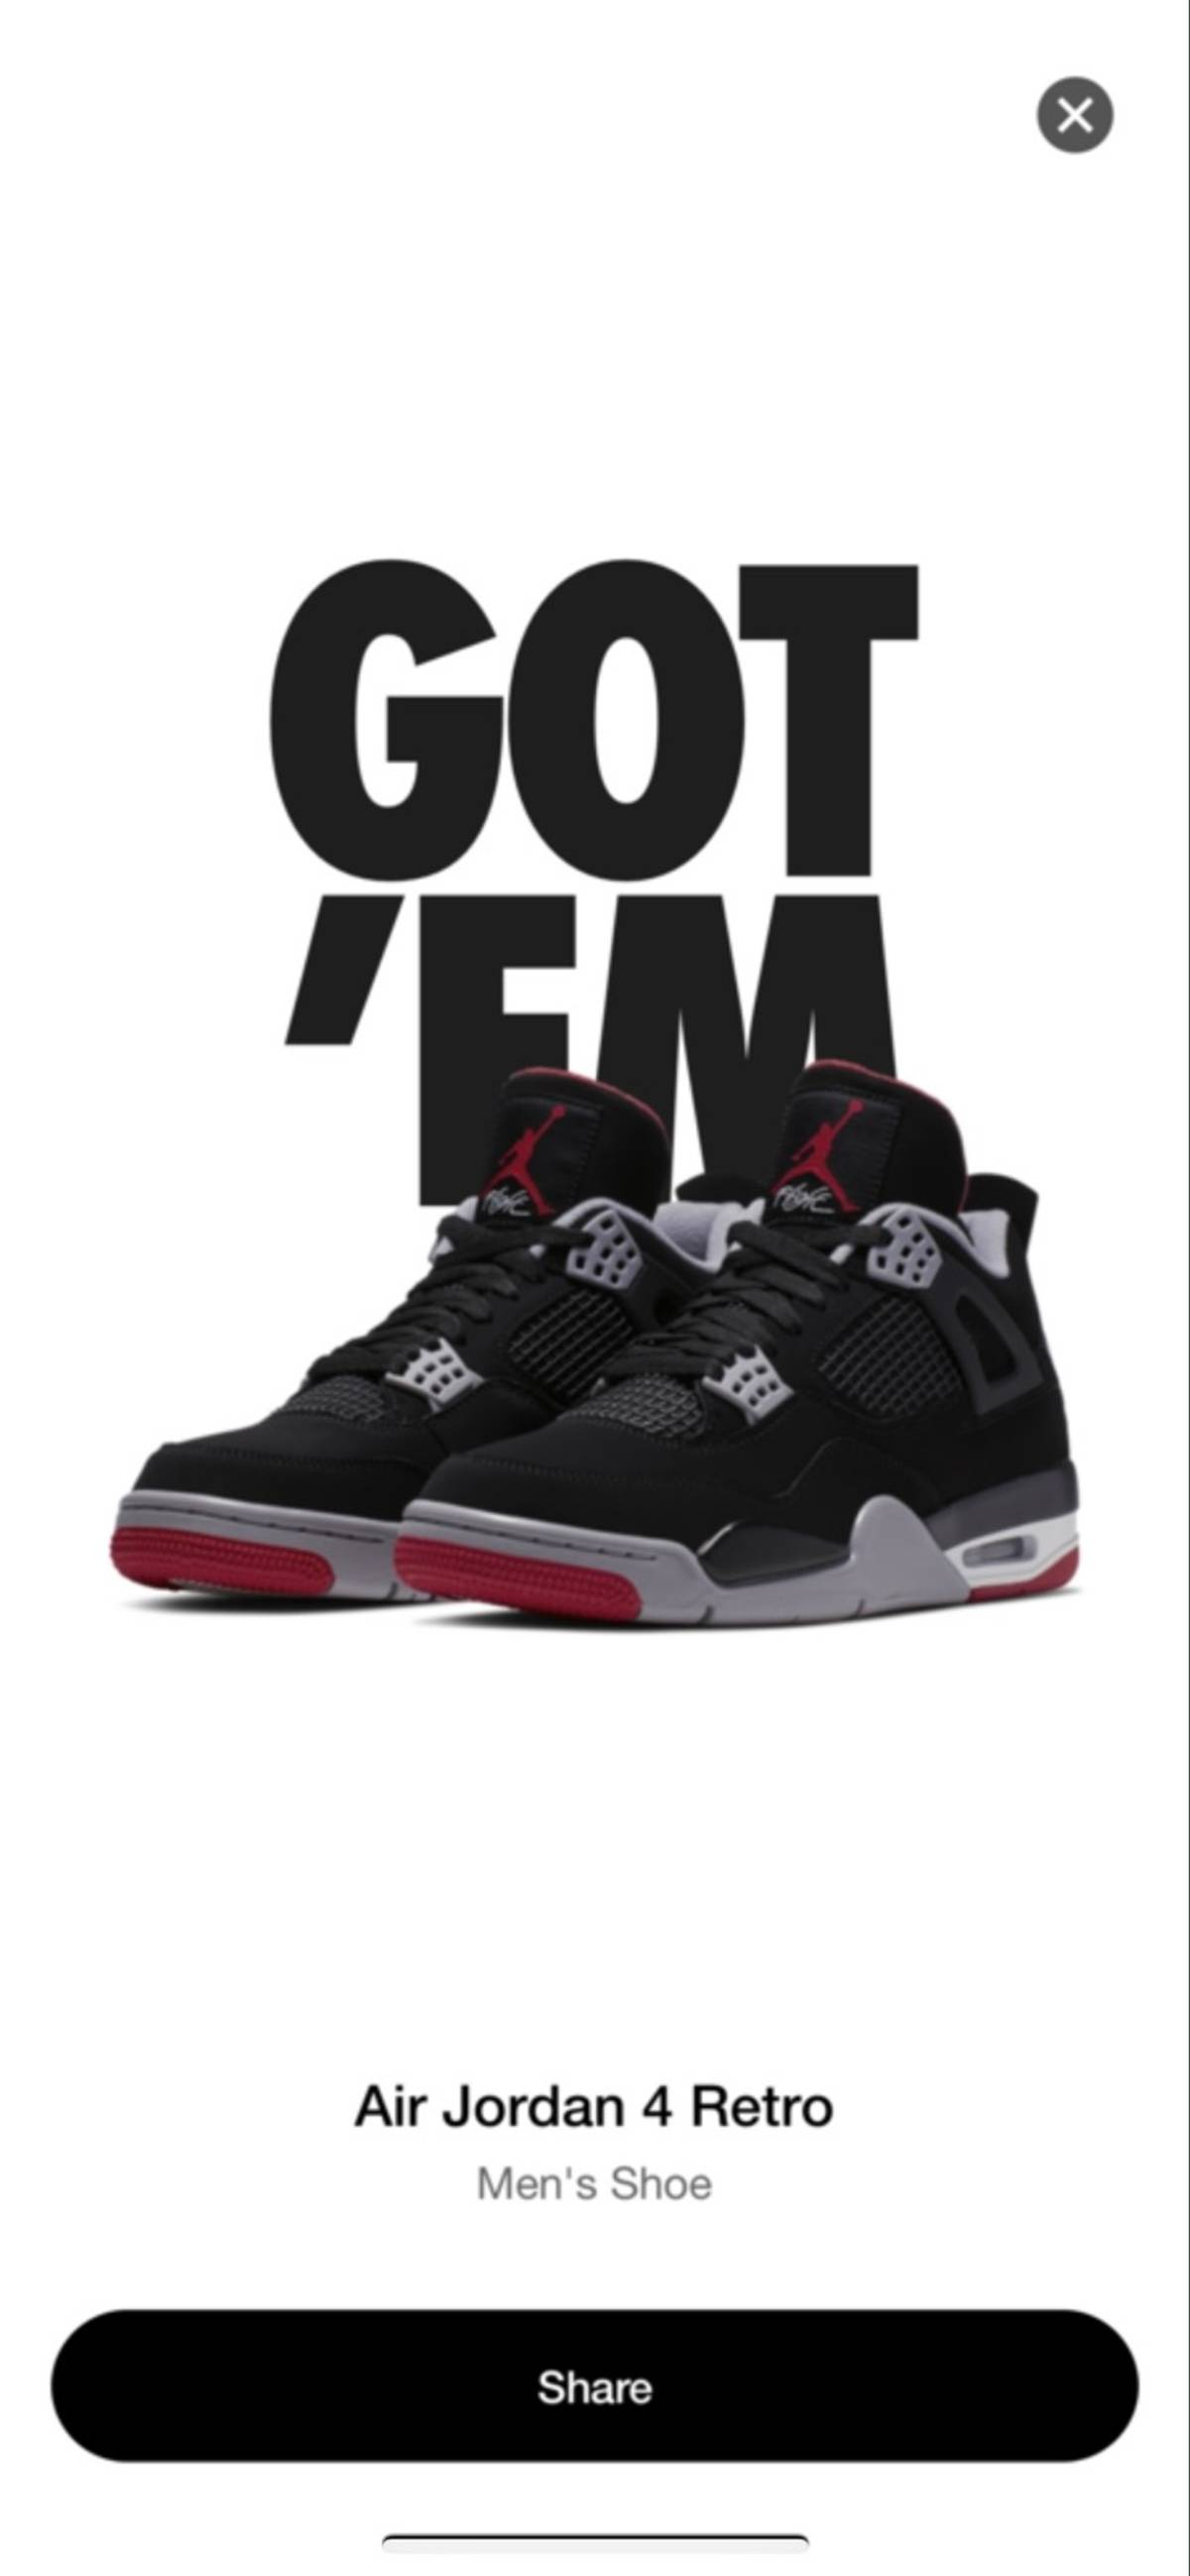 9147f2669131e5 Jordan Brand Air Jordan 4 Retro Black Cement Bred 2019 Black Red ...